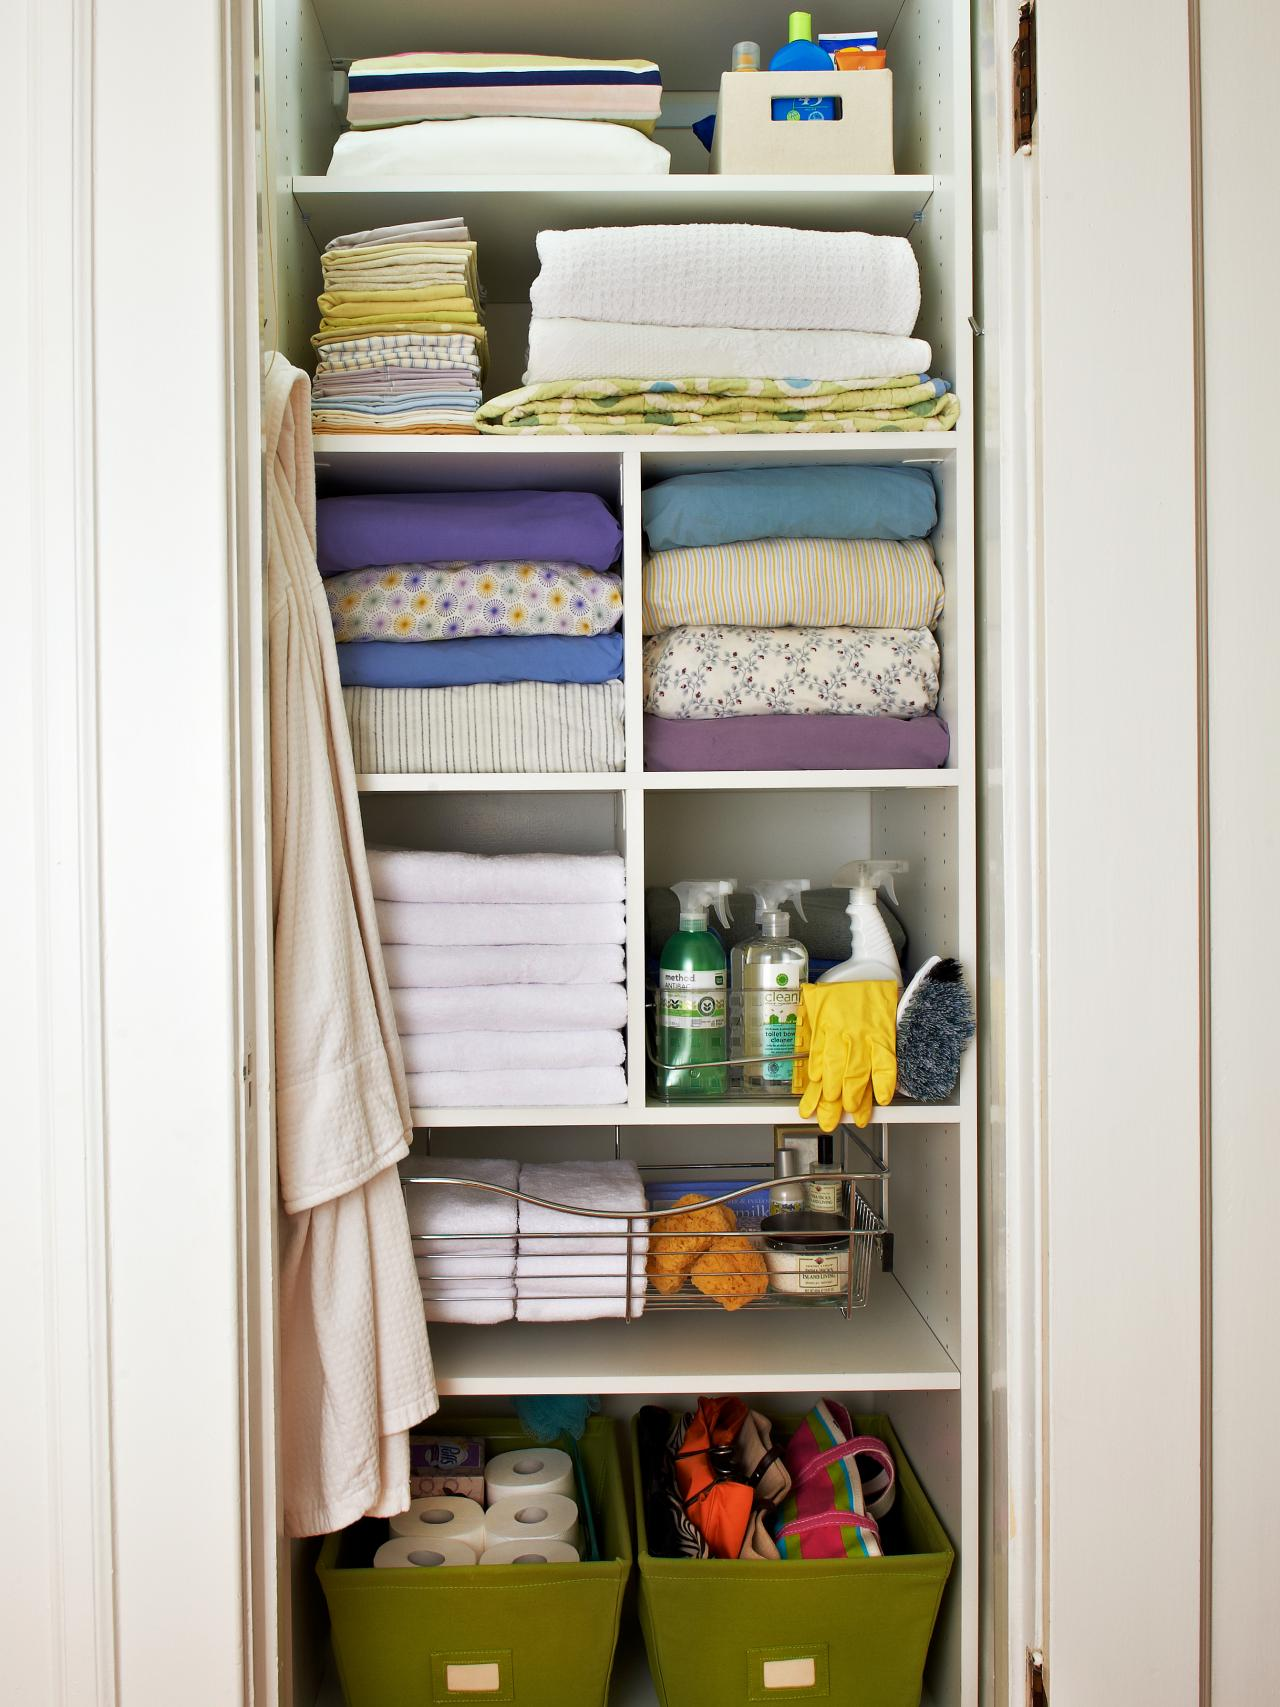 Linen Cabinet And Closet Organization Ideas HGTV - Bathroom closet organization ideas